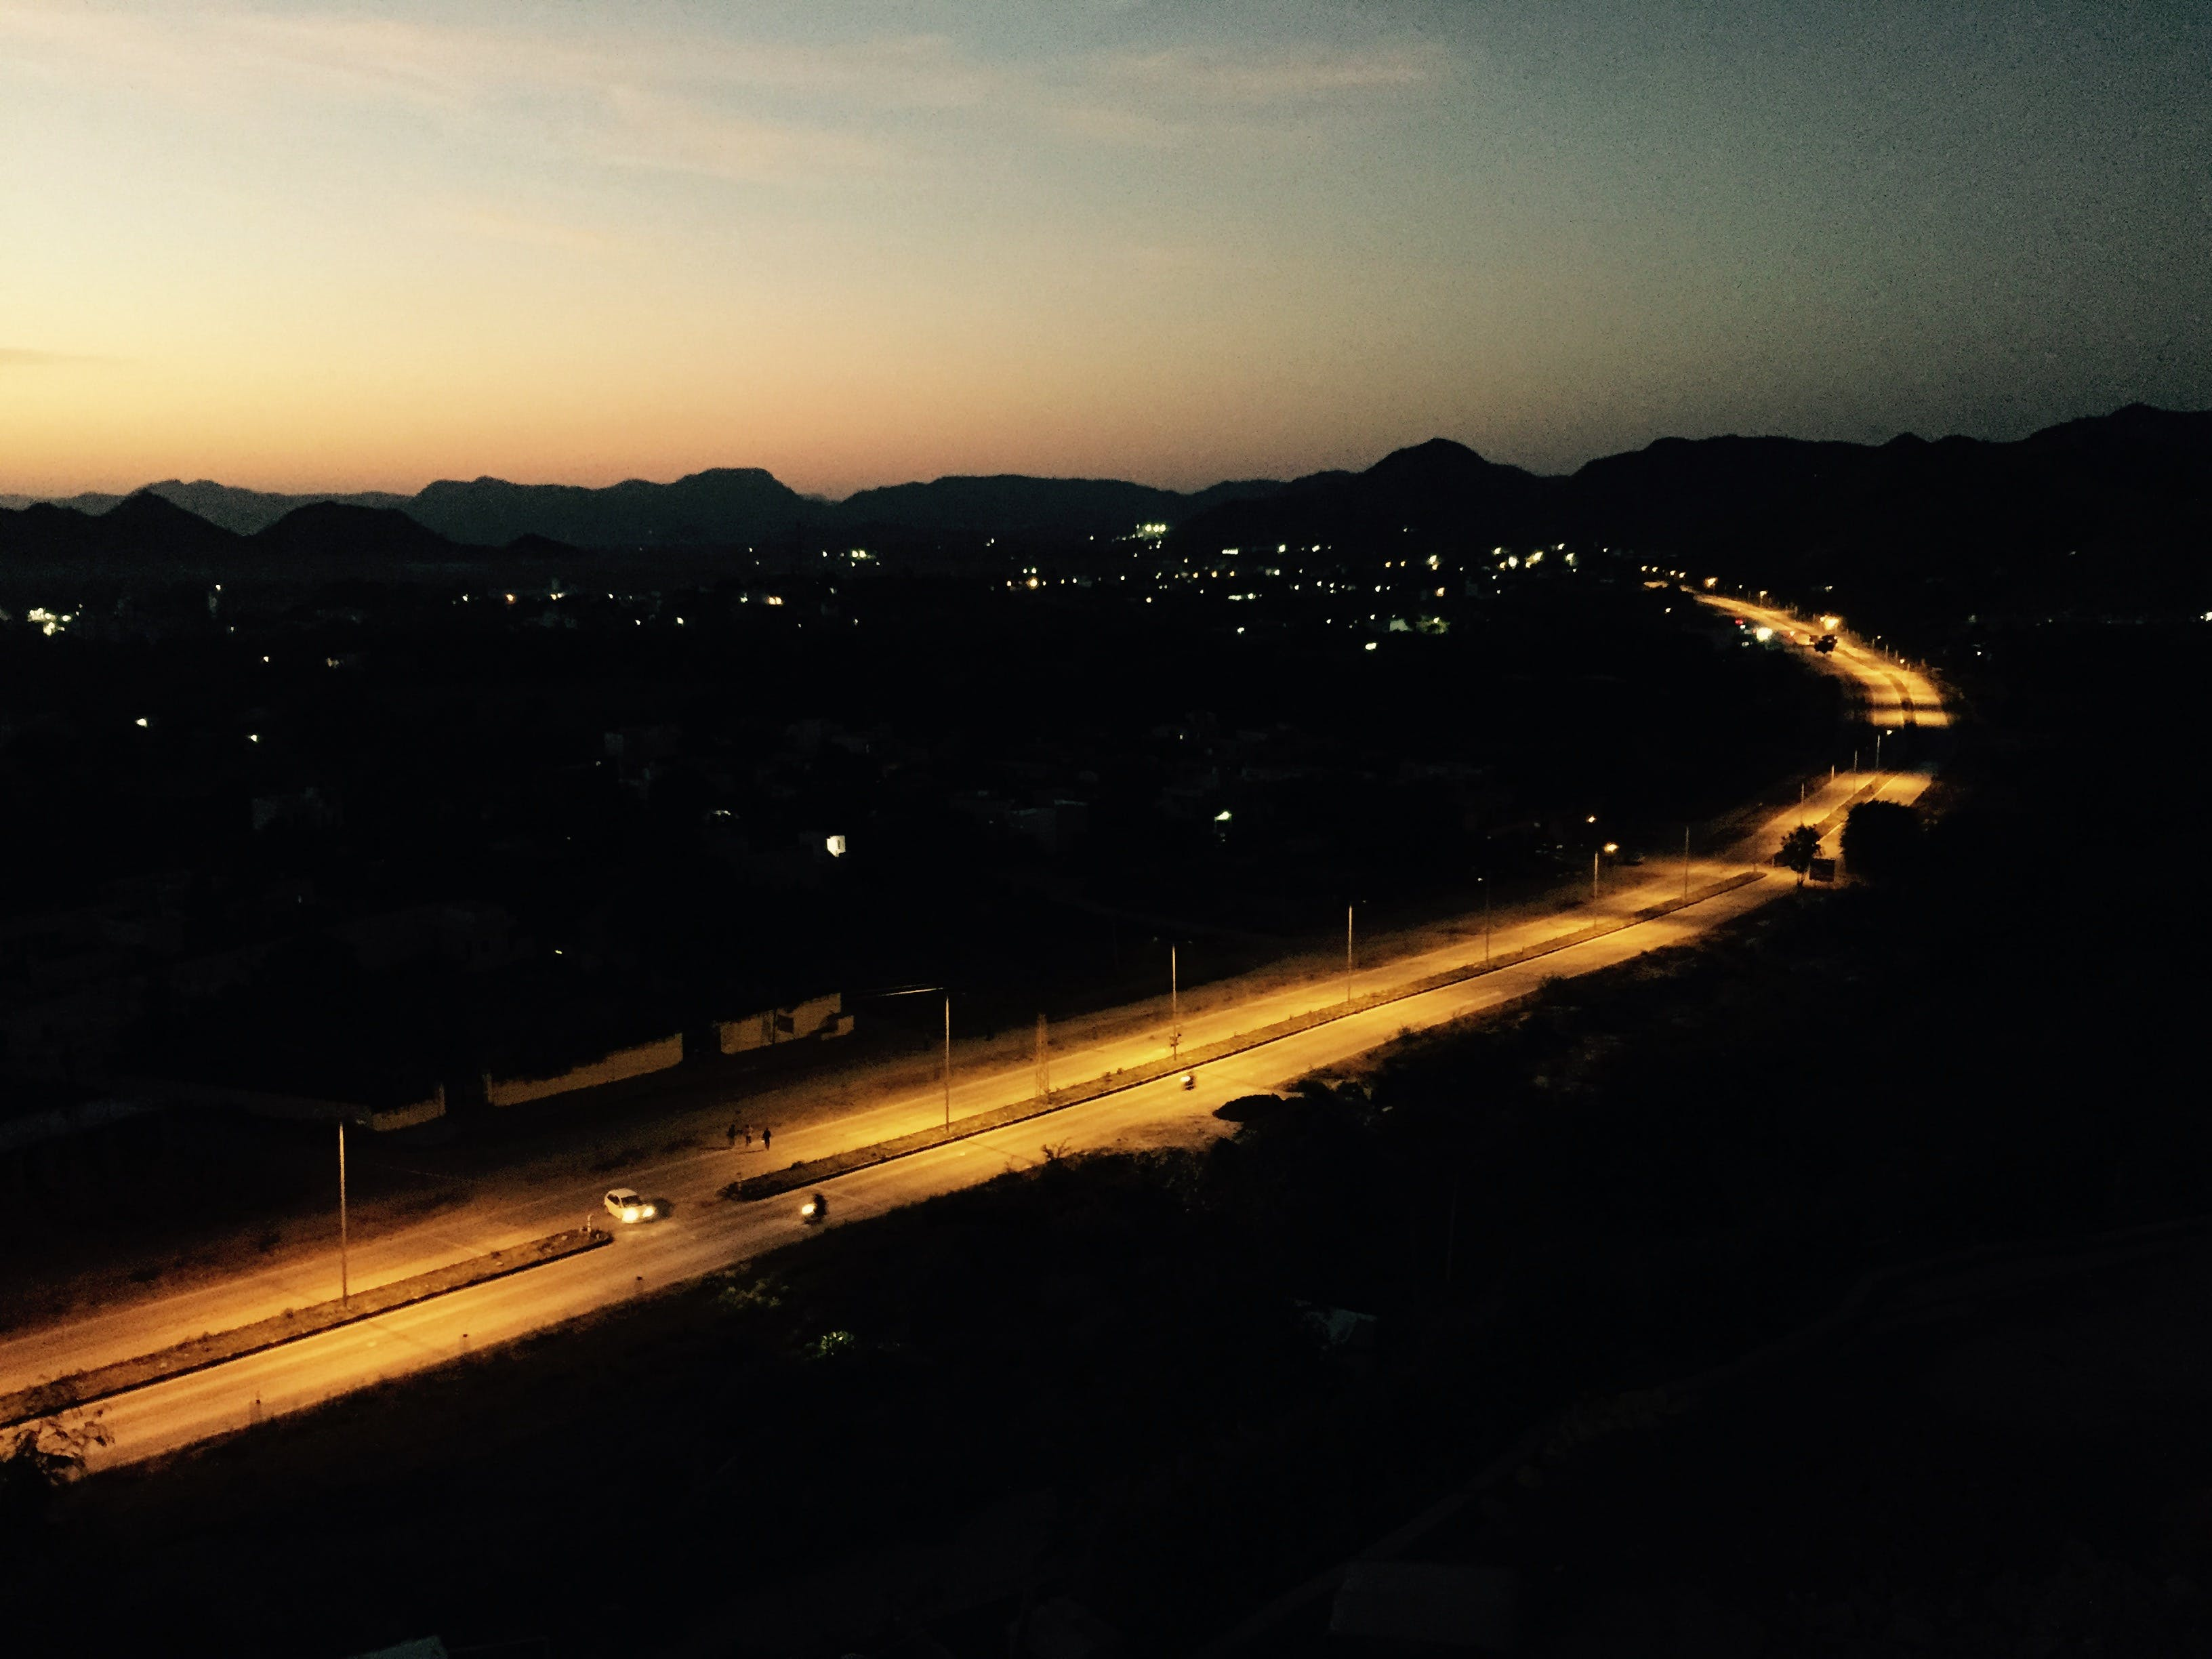 evening, highway, night